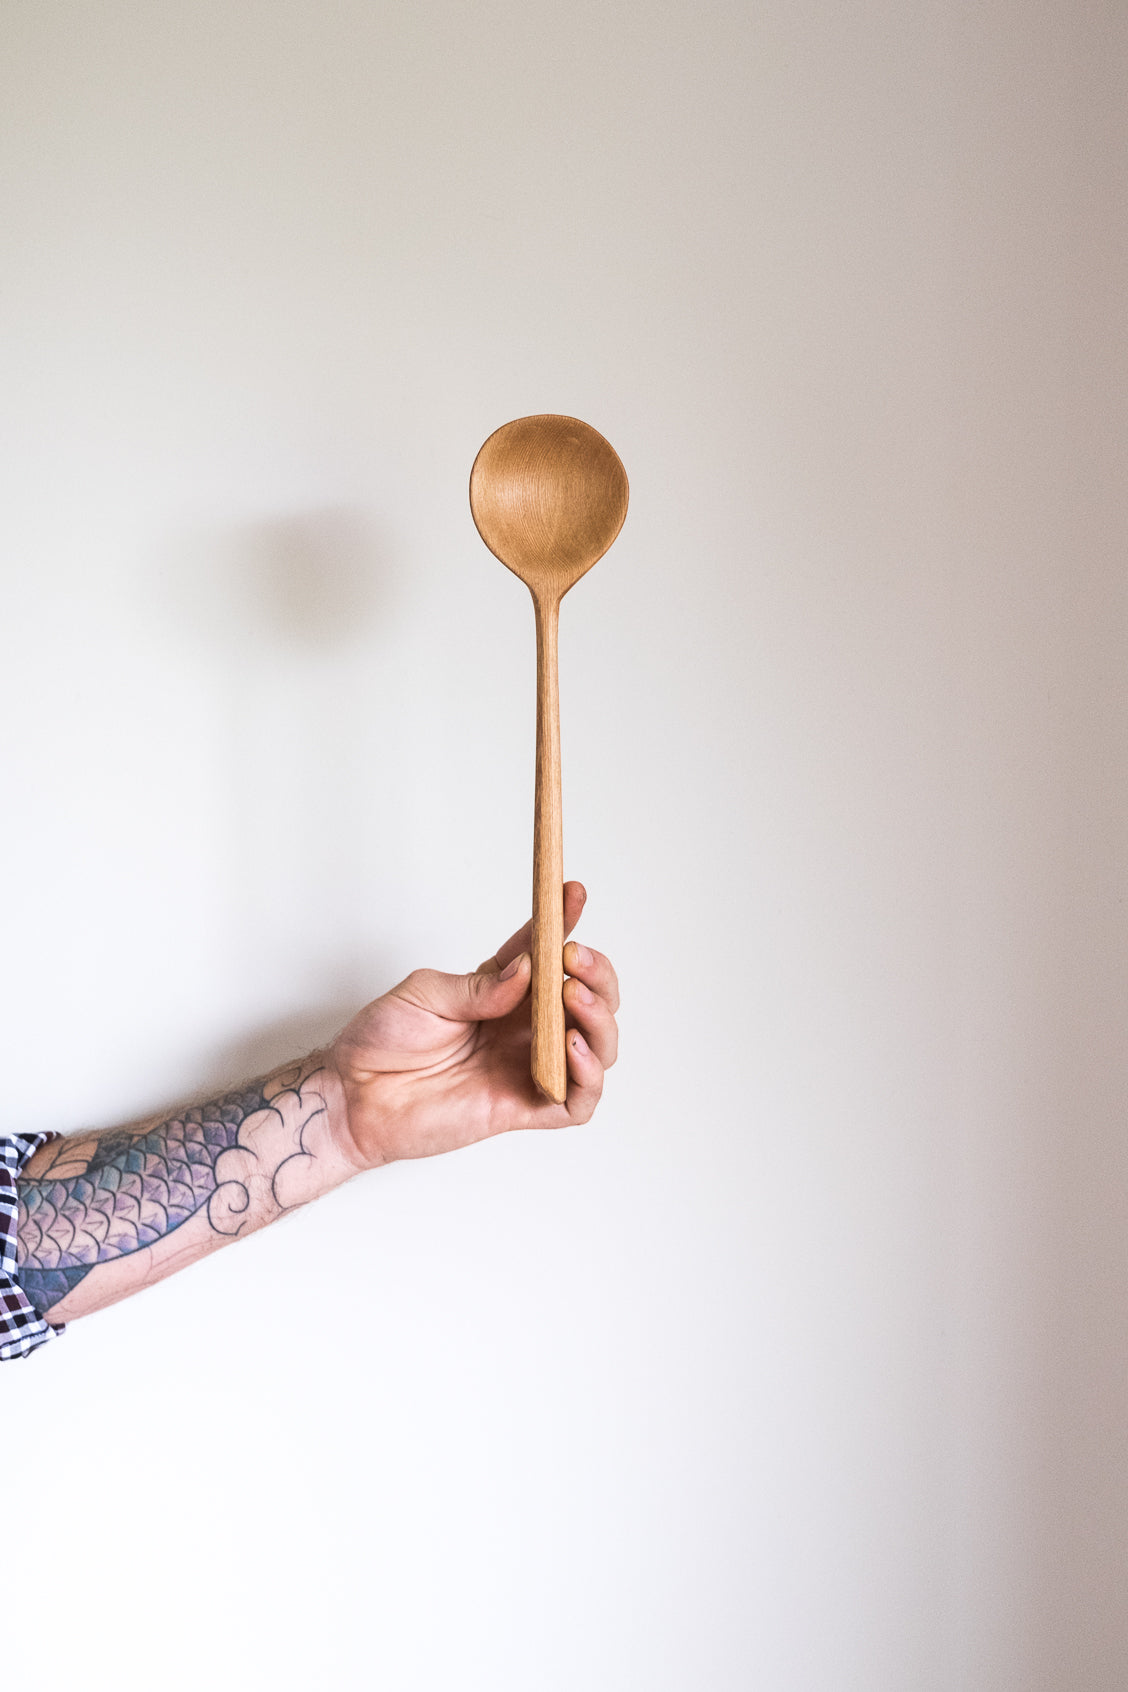 Reclaimed Rimu Wood Spoon Spatula Handmade NZ the Zephyr Co